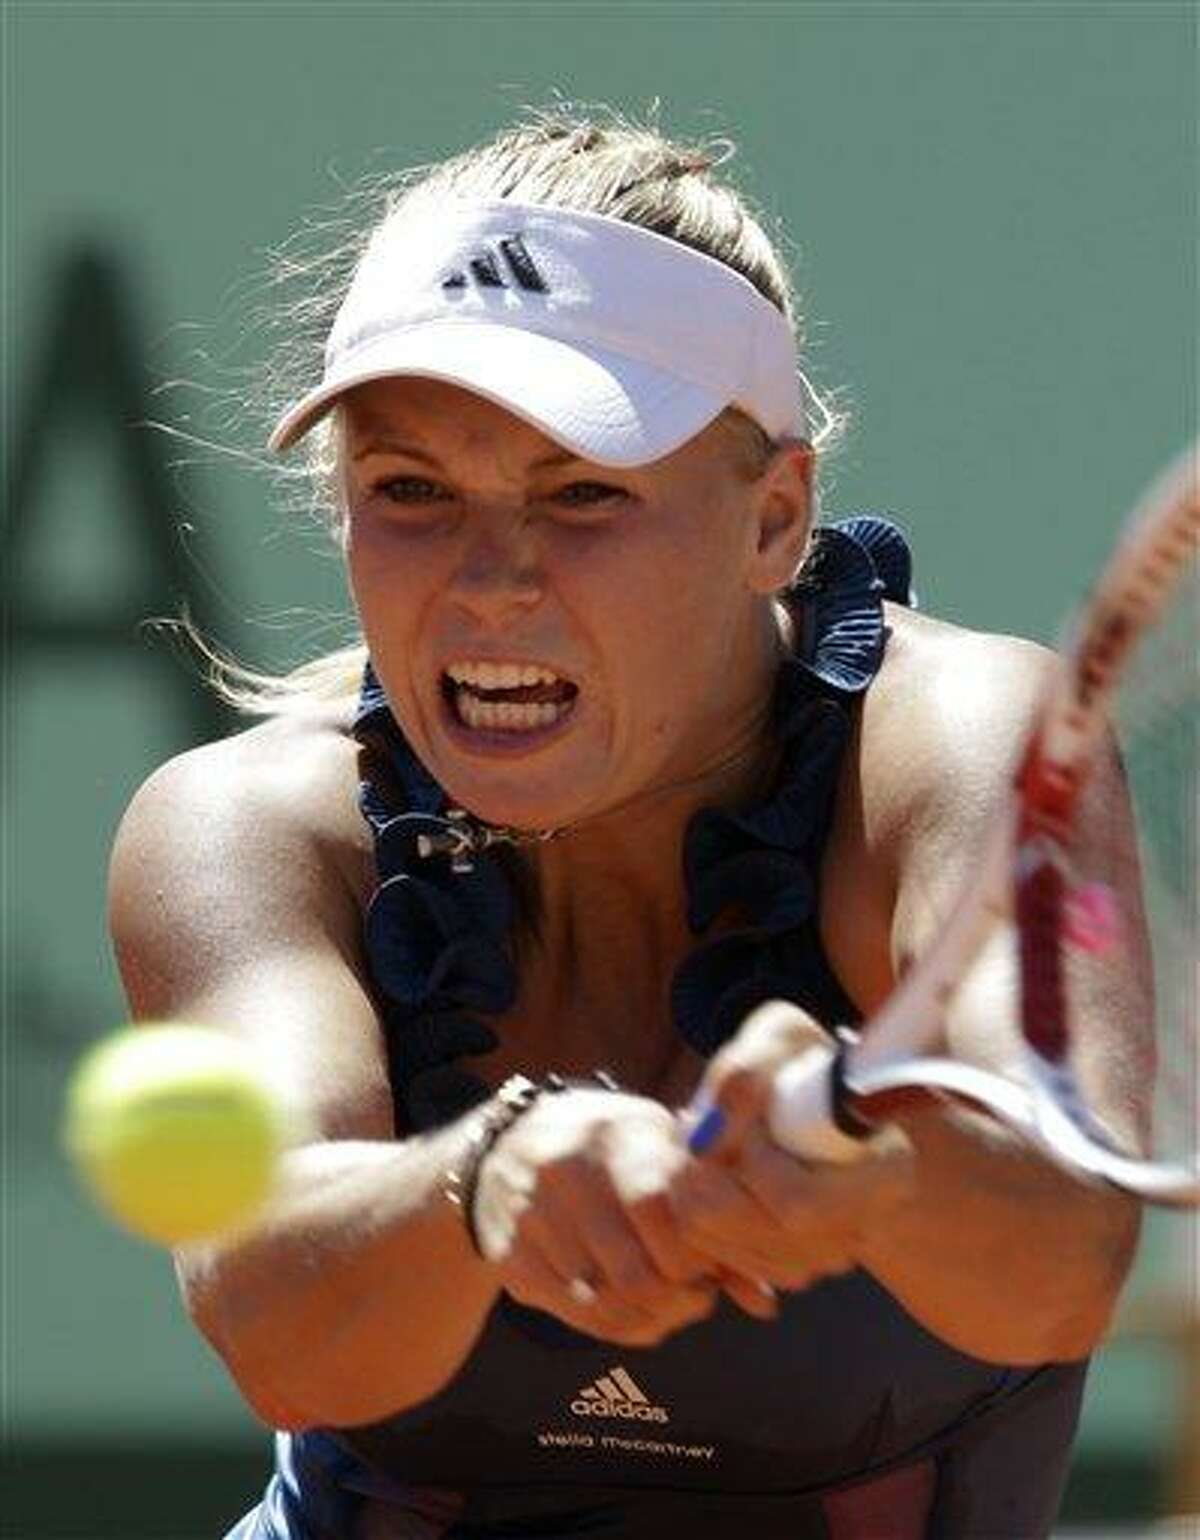 In this May 25, 2011 file photo, Denmark's Caroline Wozniacki returns the ball to Canada's Aleksandra Wozniak during their second round match of the French Open tennis tournament, at the Roland Garros stadium in Paris. (AP Photo/Lionel Cironneau, File)